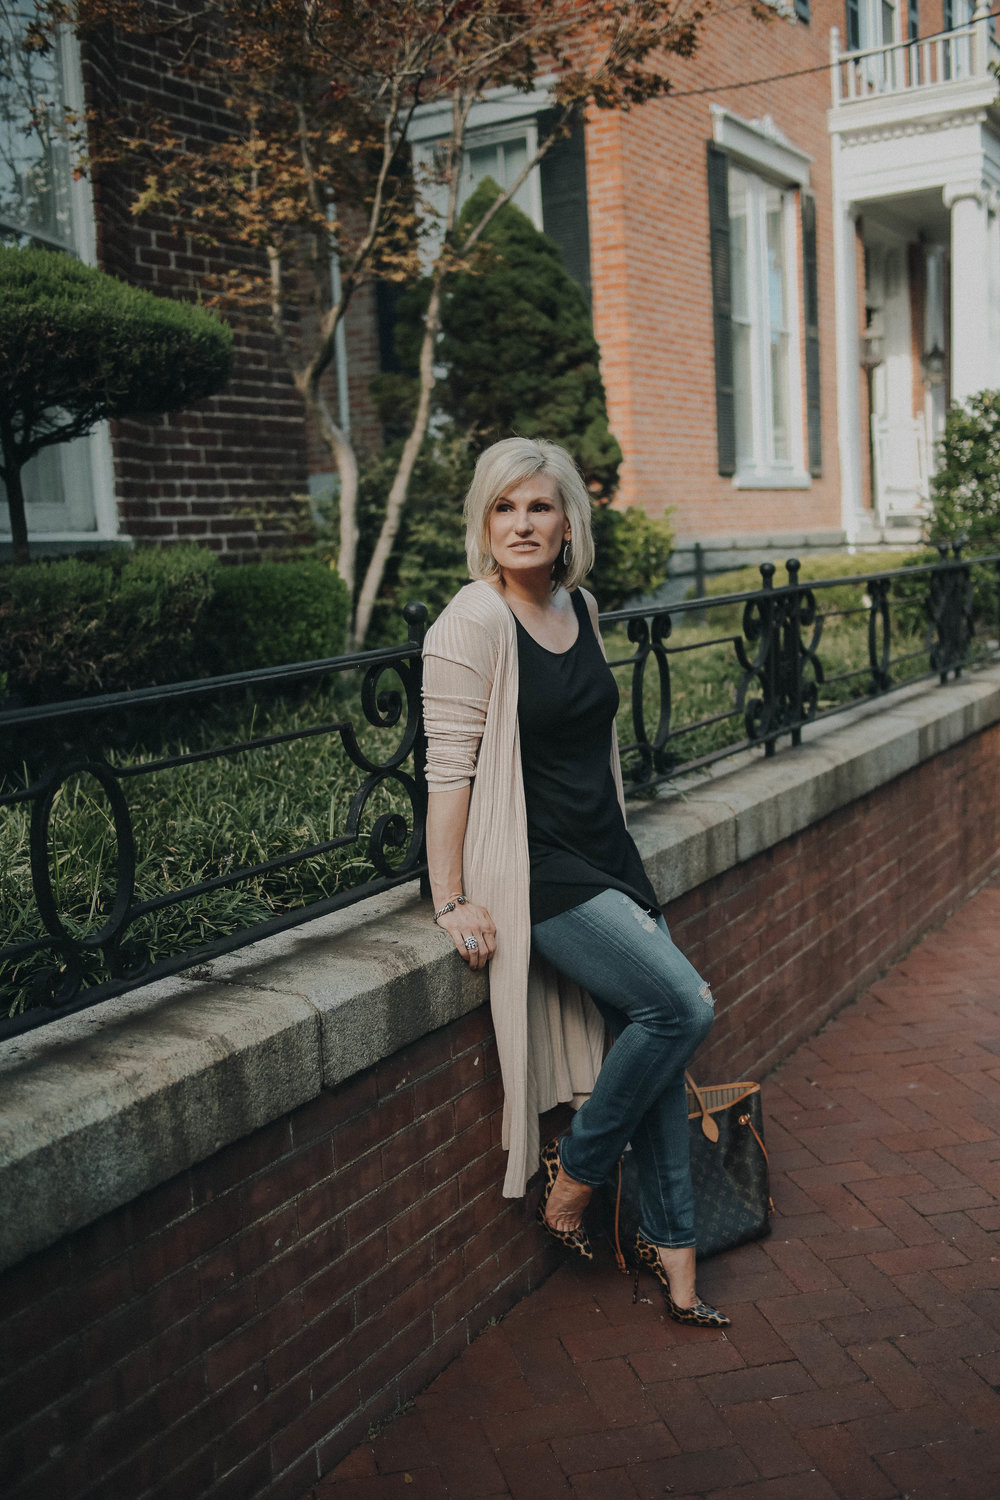 LOOK THREE - Cardigan: Lovers + Friends X Revolve Franklin Duster | Black Tank: Eileen Fisher Scoop Neck Long Tank | Heels: Christian Louboutin So Kate Genuine Calf Hair Half d'Orsay Pump (Not the exact style but very similar) | Handbag: Louis Vuitton Neverf.MM NM Mng Beige